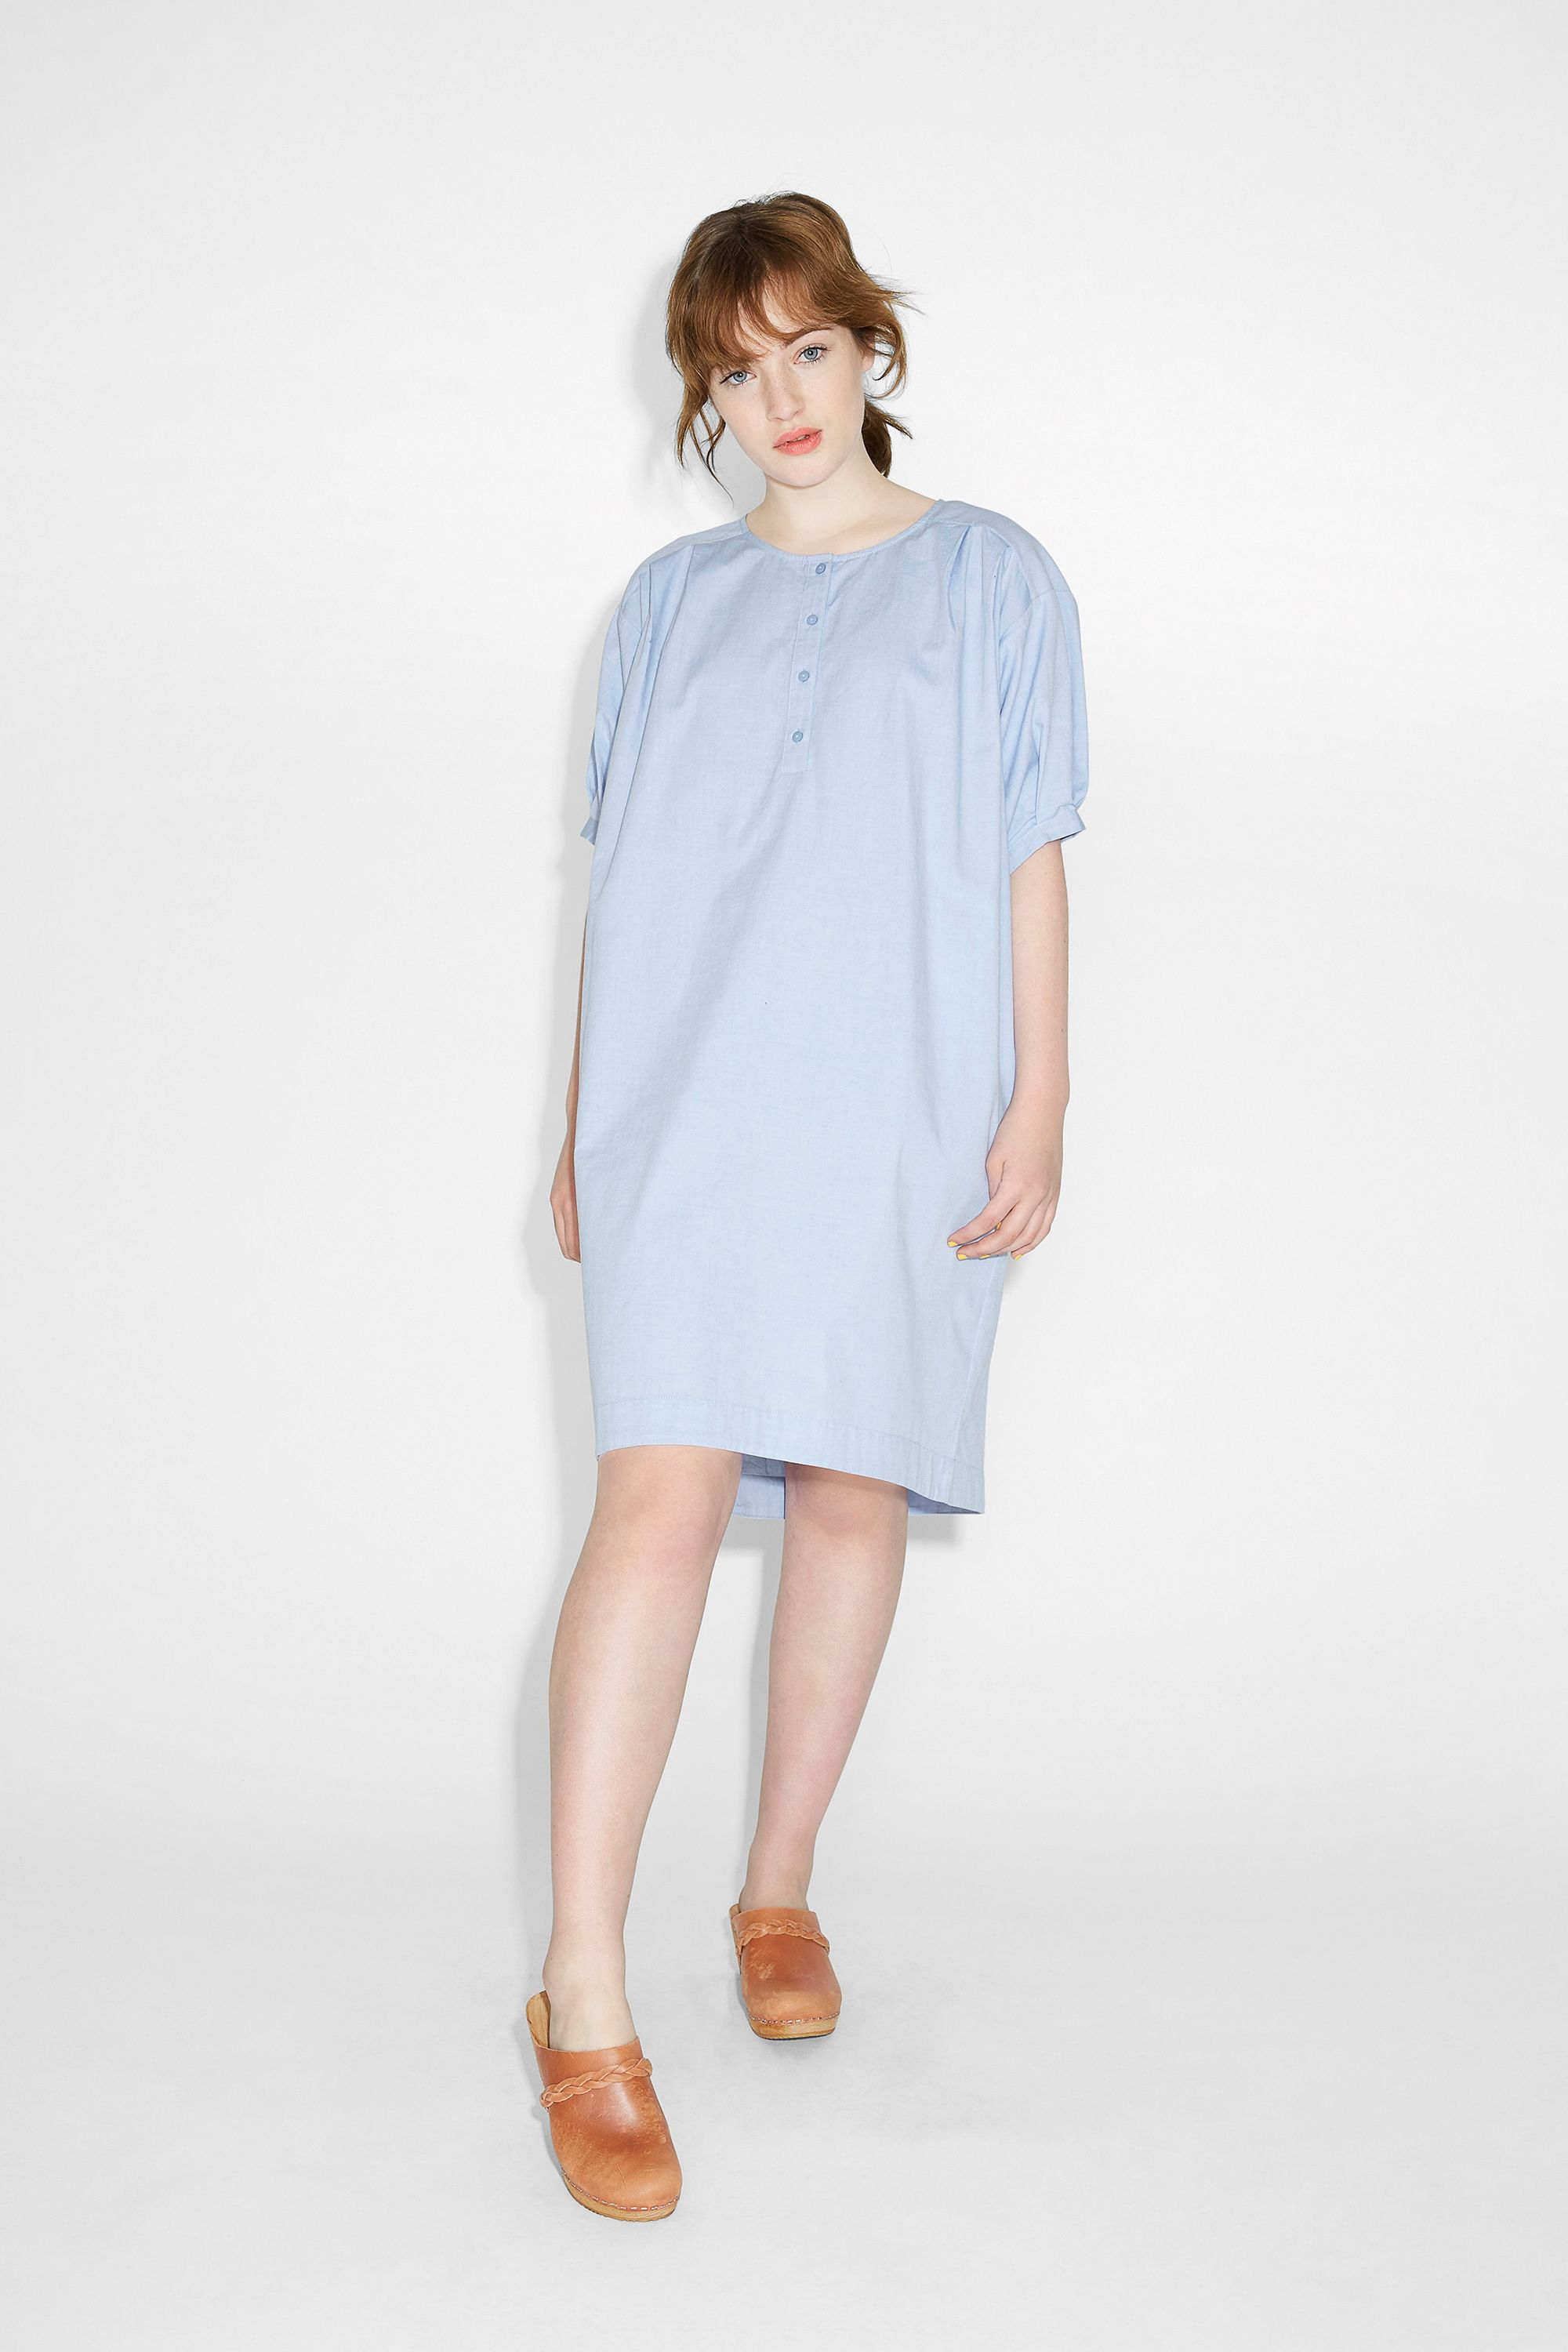 The splendid lounging, après beach, wear-for-fun-times dress. Oversized and billowy in all cotton comfort with pinched tee arms, a buttoned scoop neckline and handy side pockets.